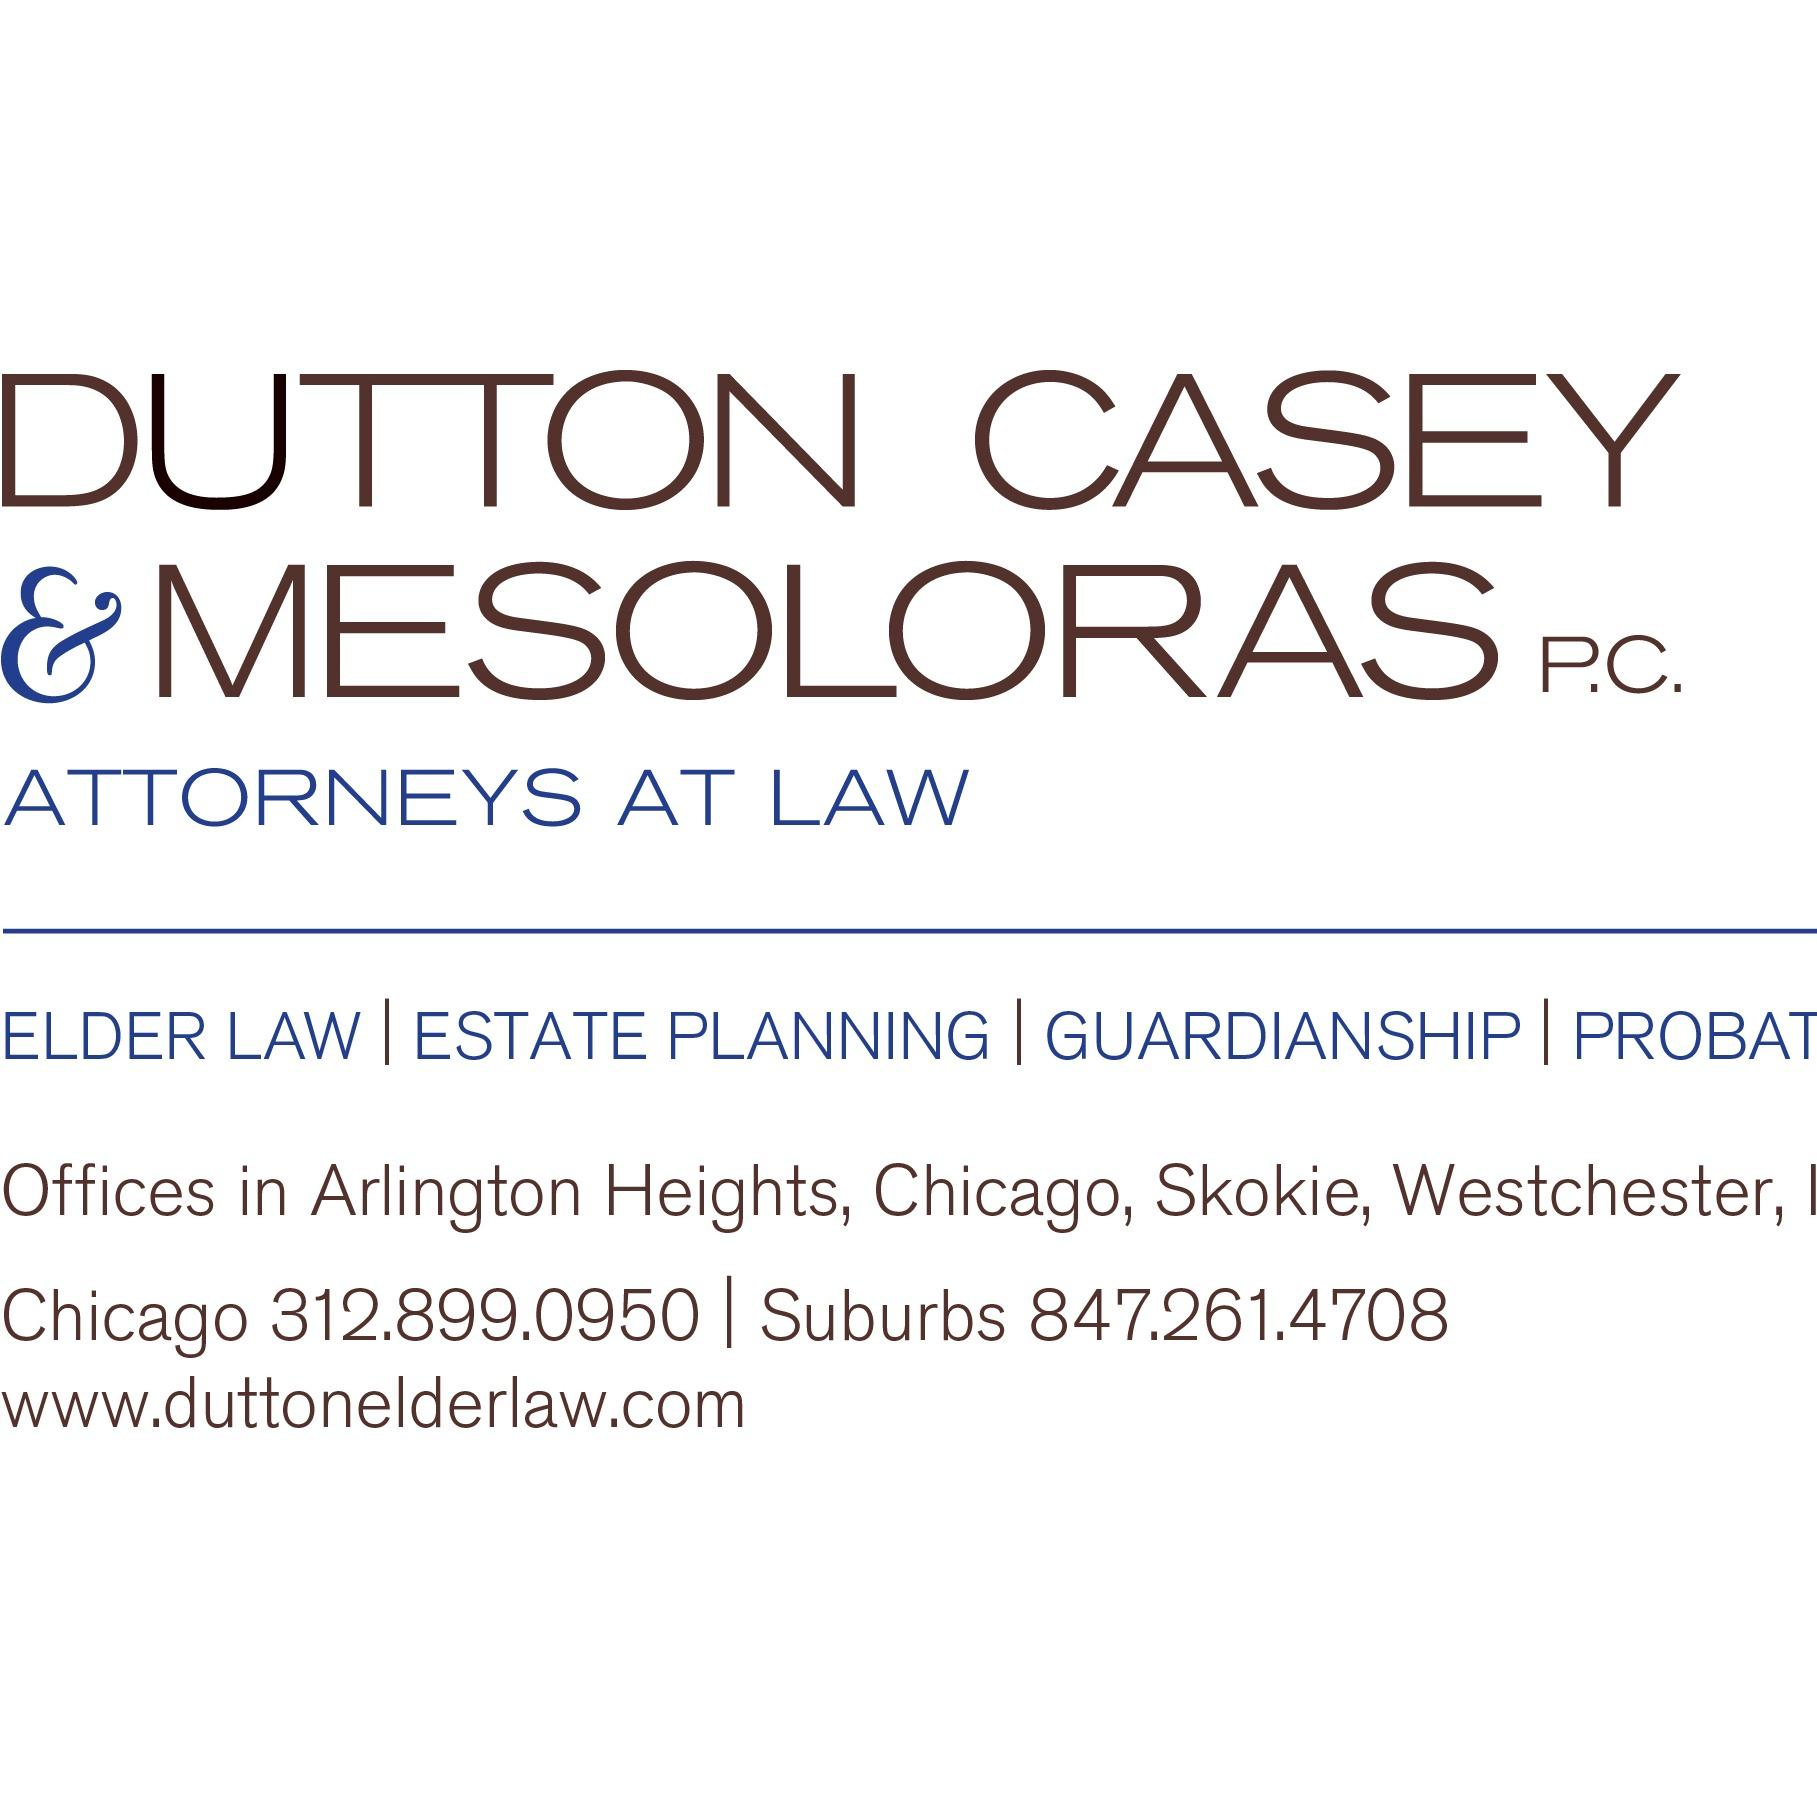 Dutton Casey & Mesoloras, Attorneys (Elder Law I Estate Planning I Guardianship I Probate)